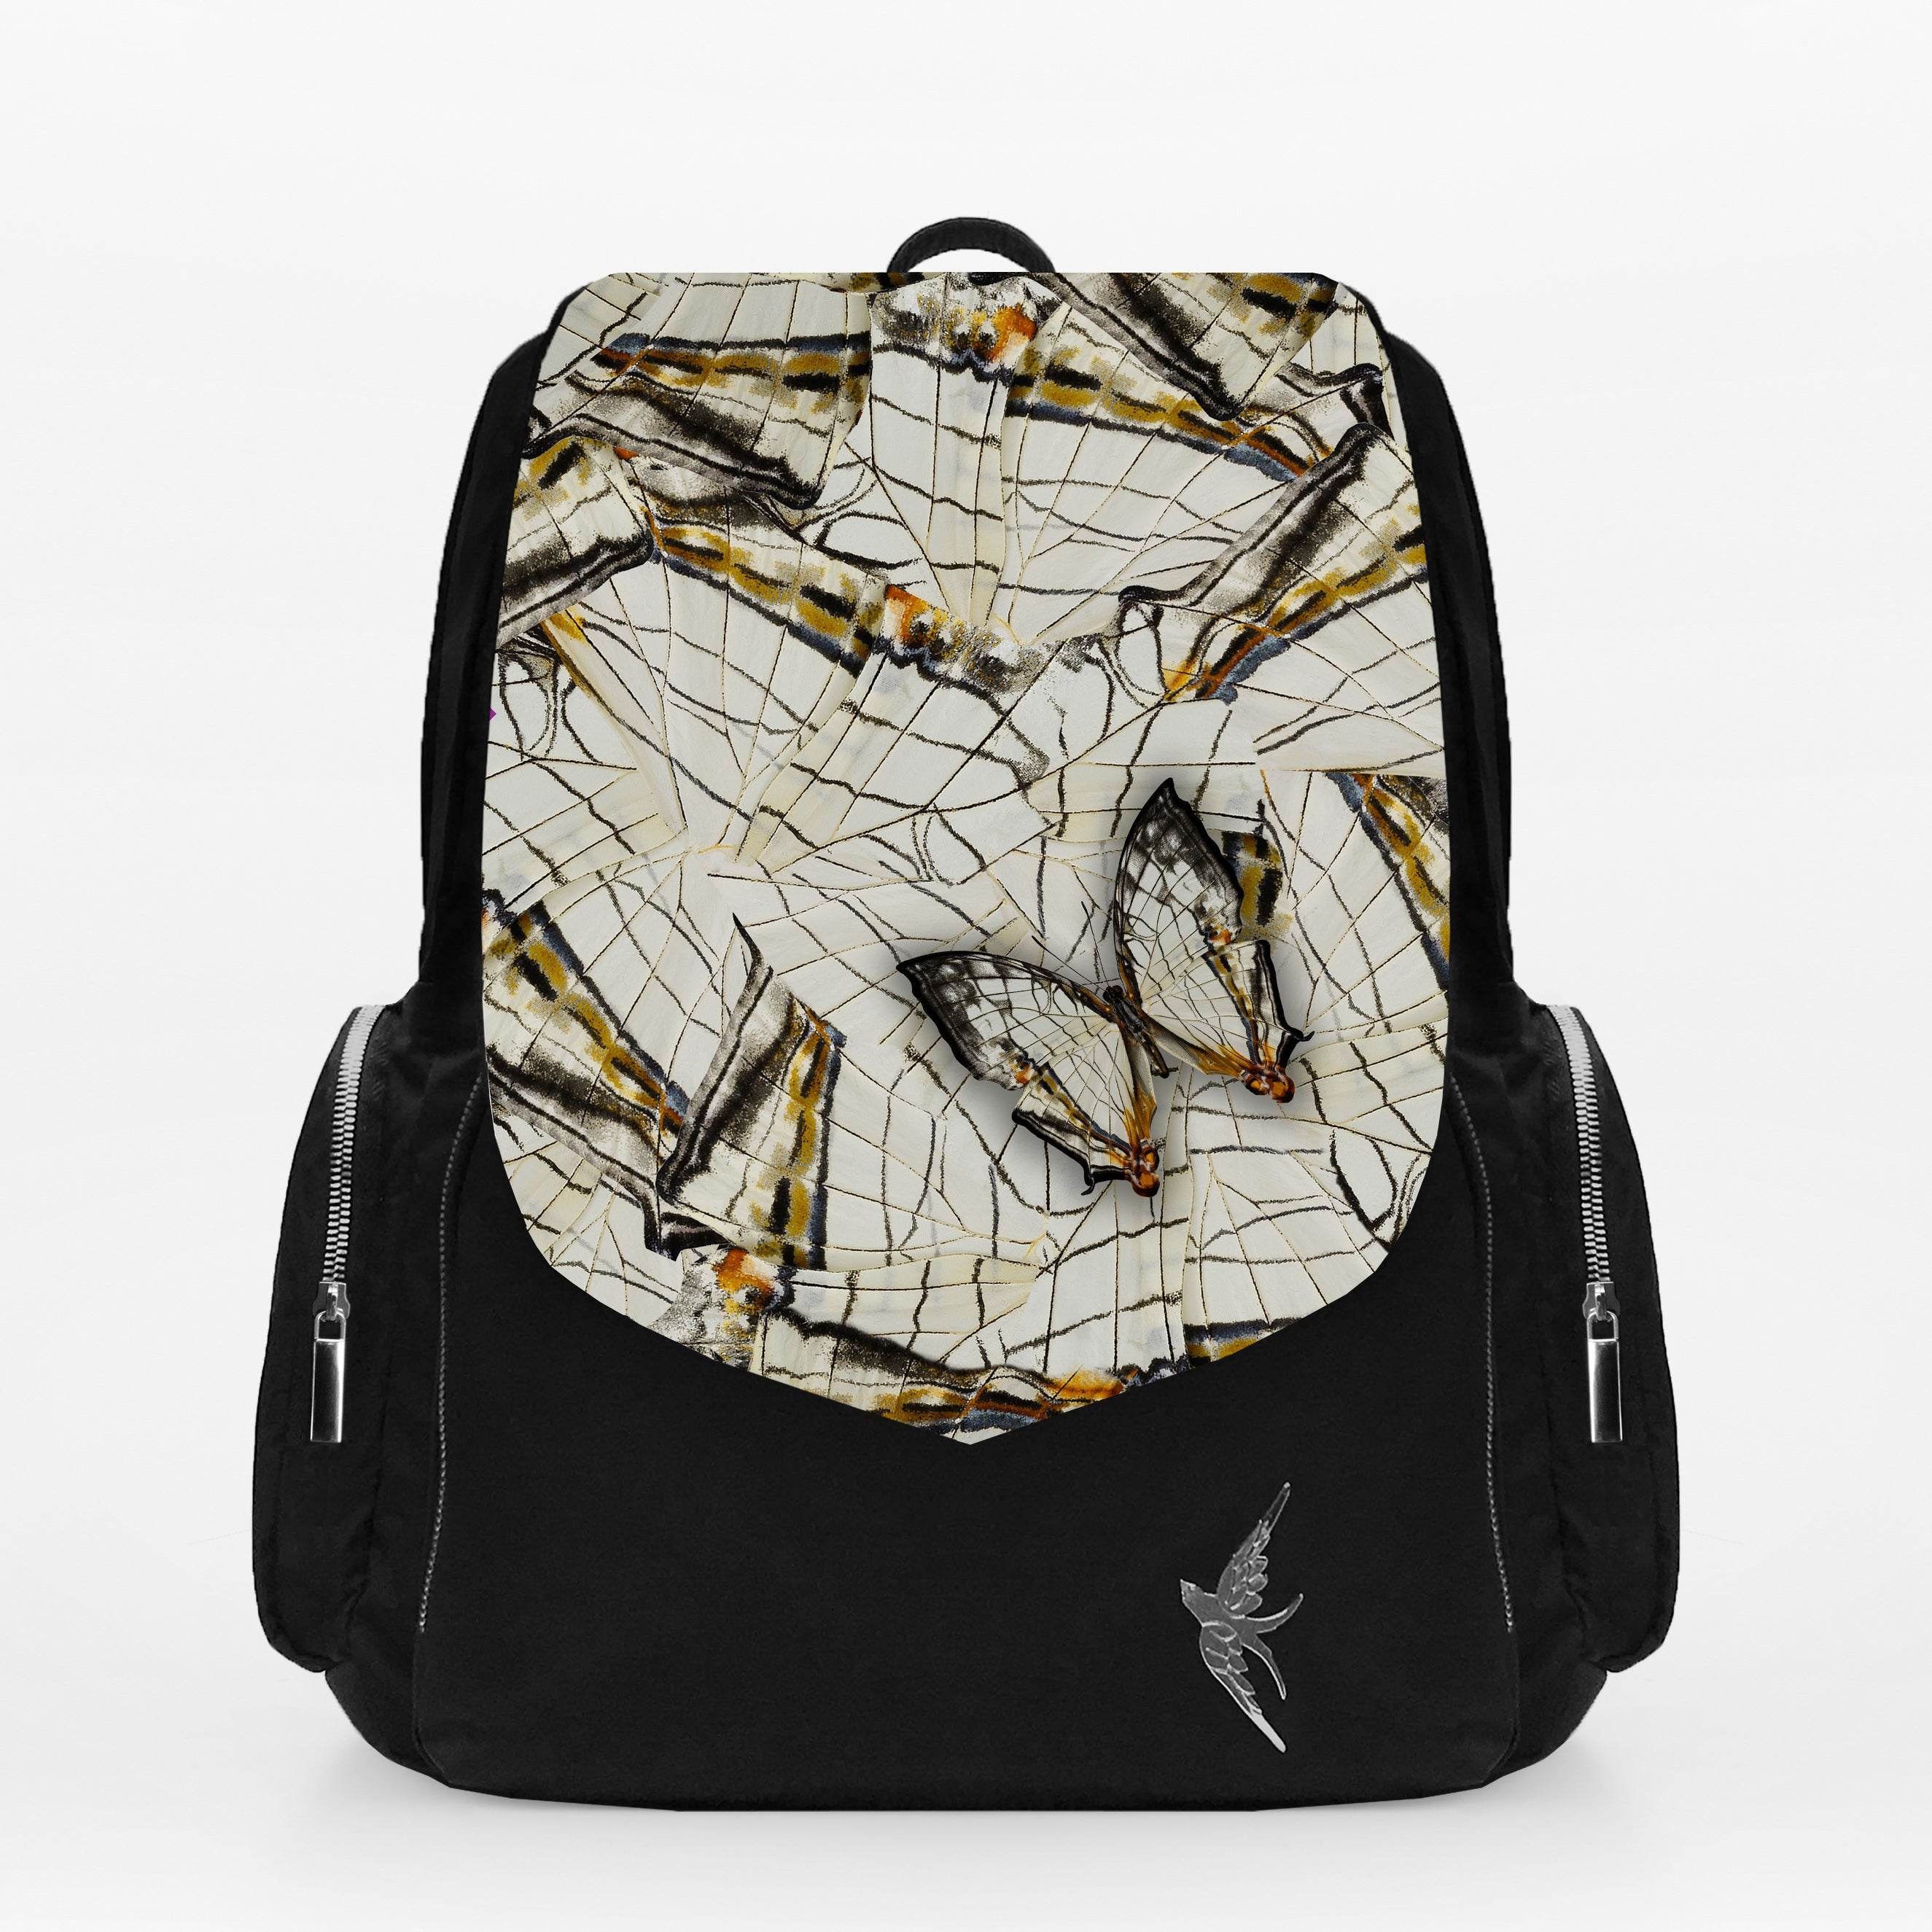 Stylish Laptop Backpack with the Olive Butterfly Print